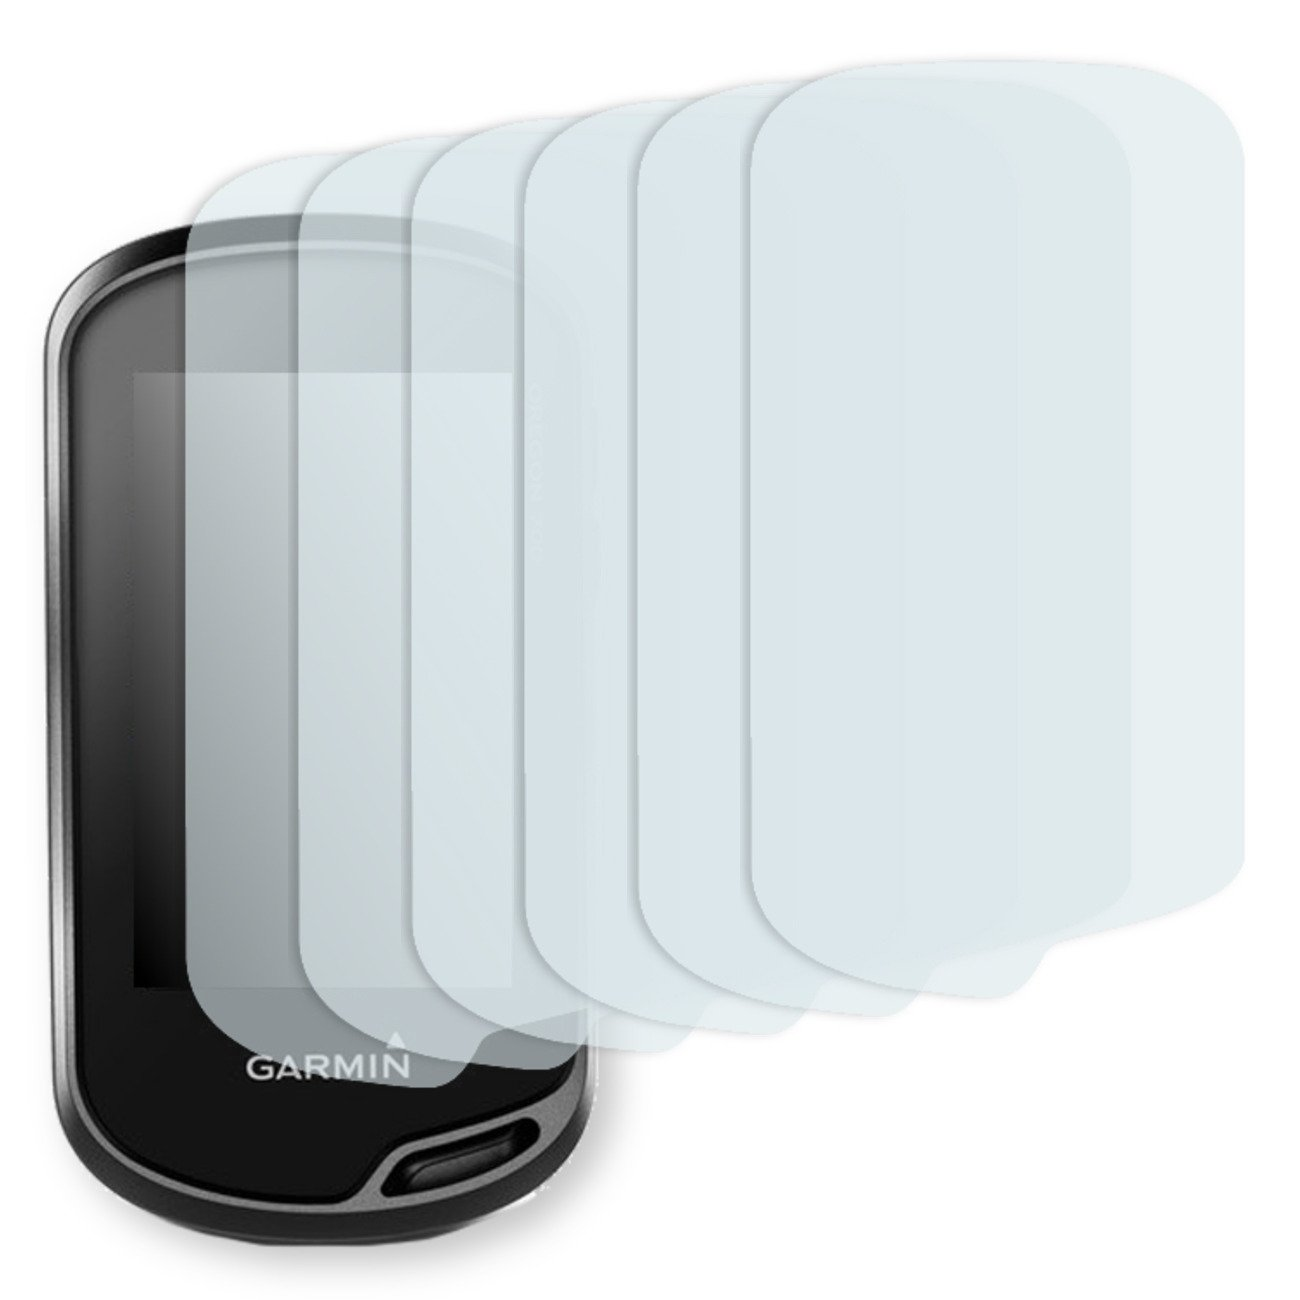 6X Golebo Crystal Clear Screen Protector for Garmin Oregon 700 - (Transparent Screen Protector, Air Pocket Free Application, Easy to Remove)